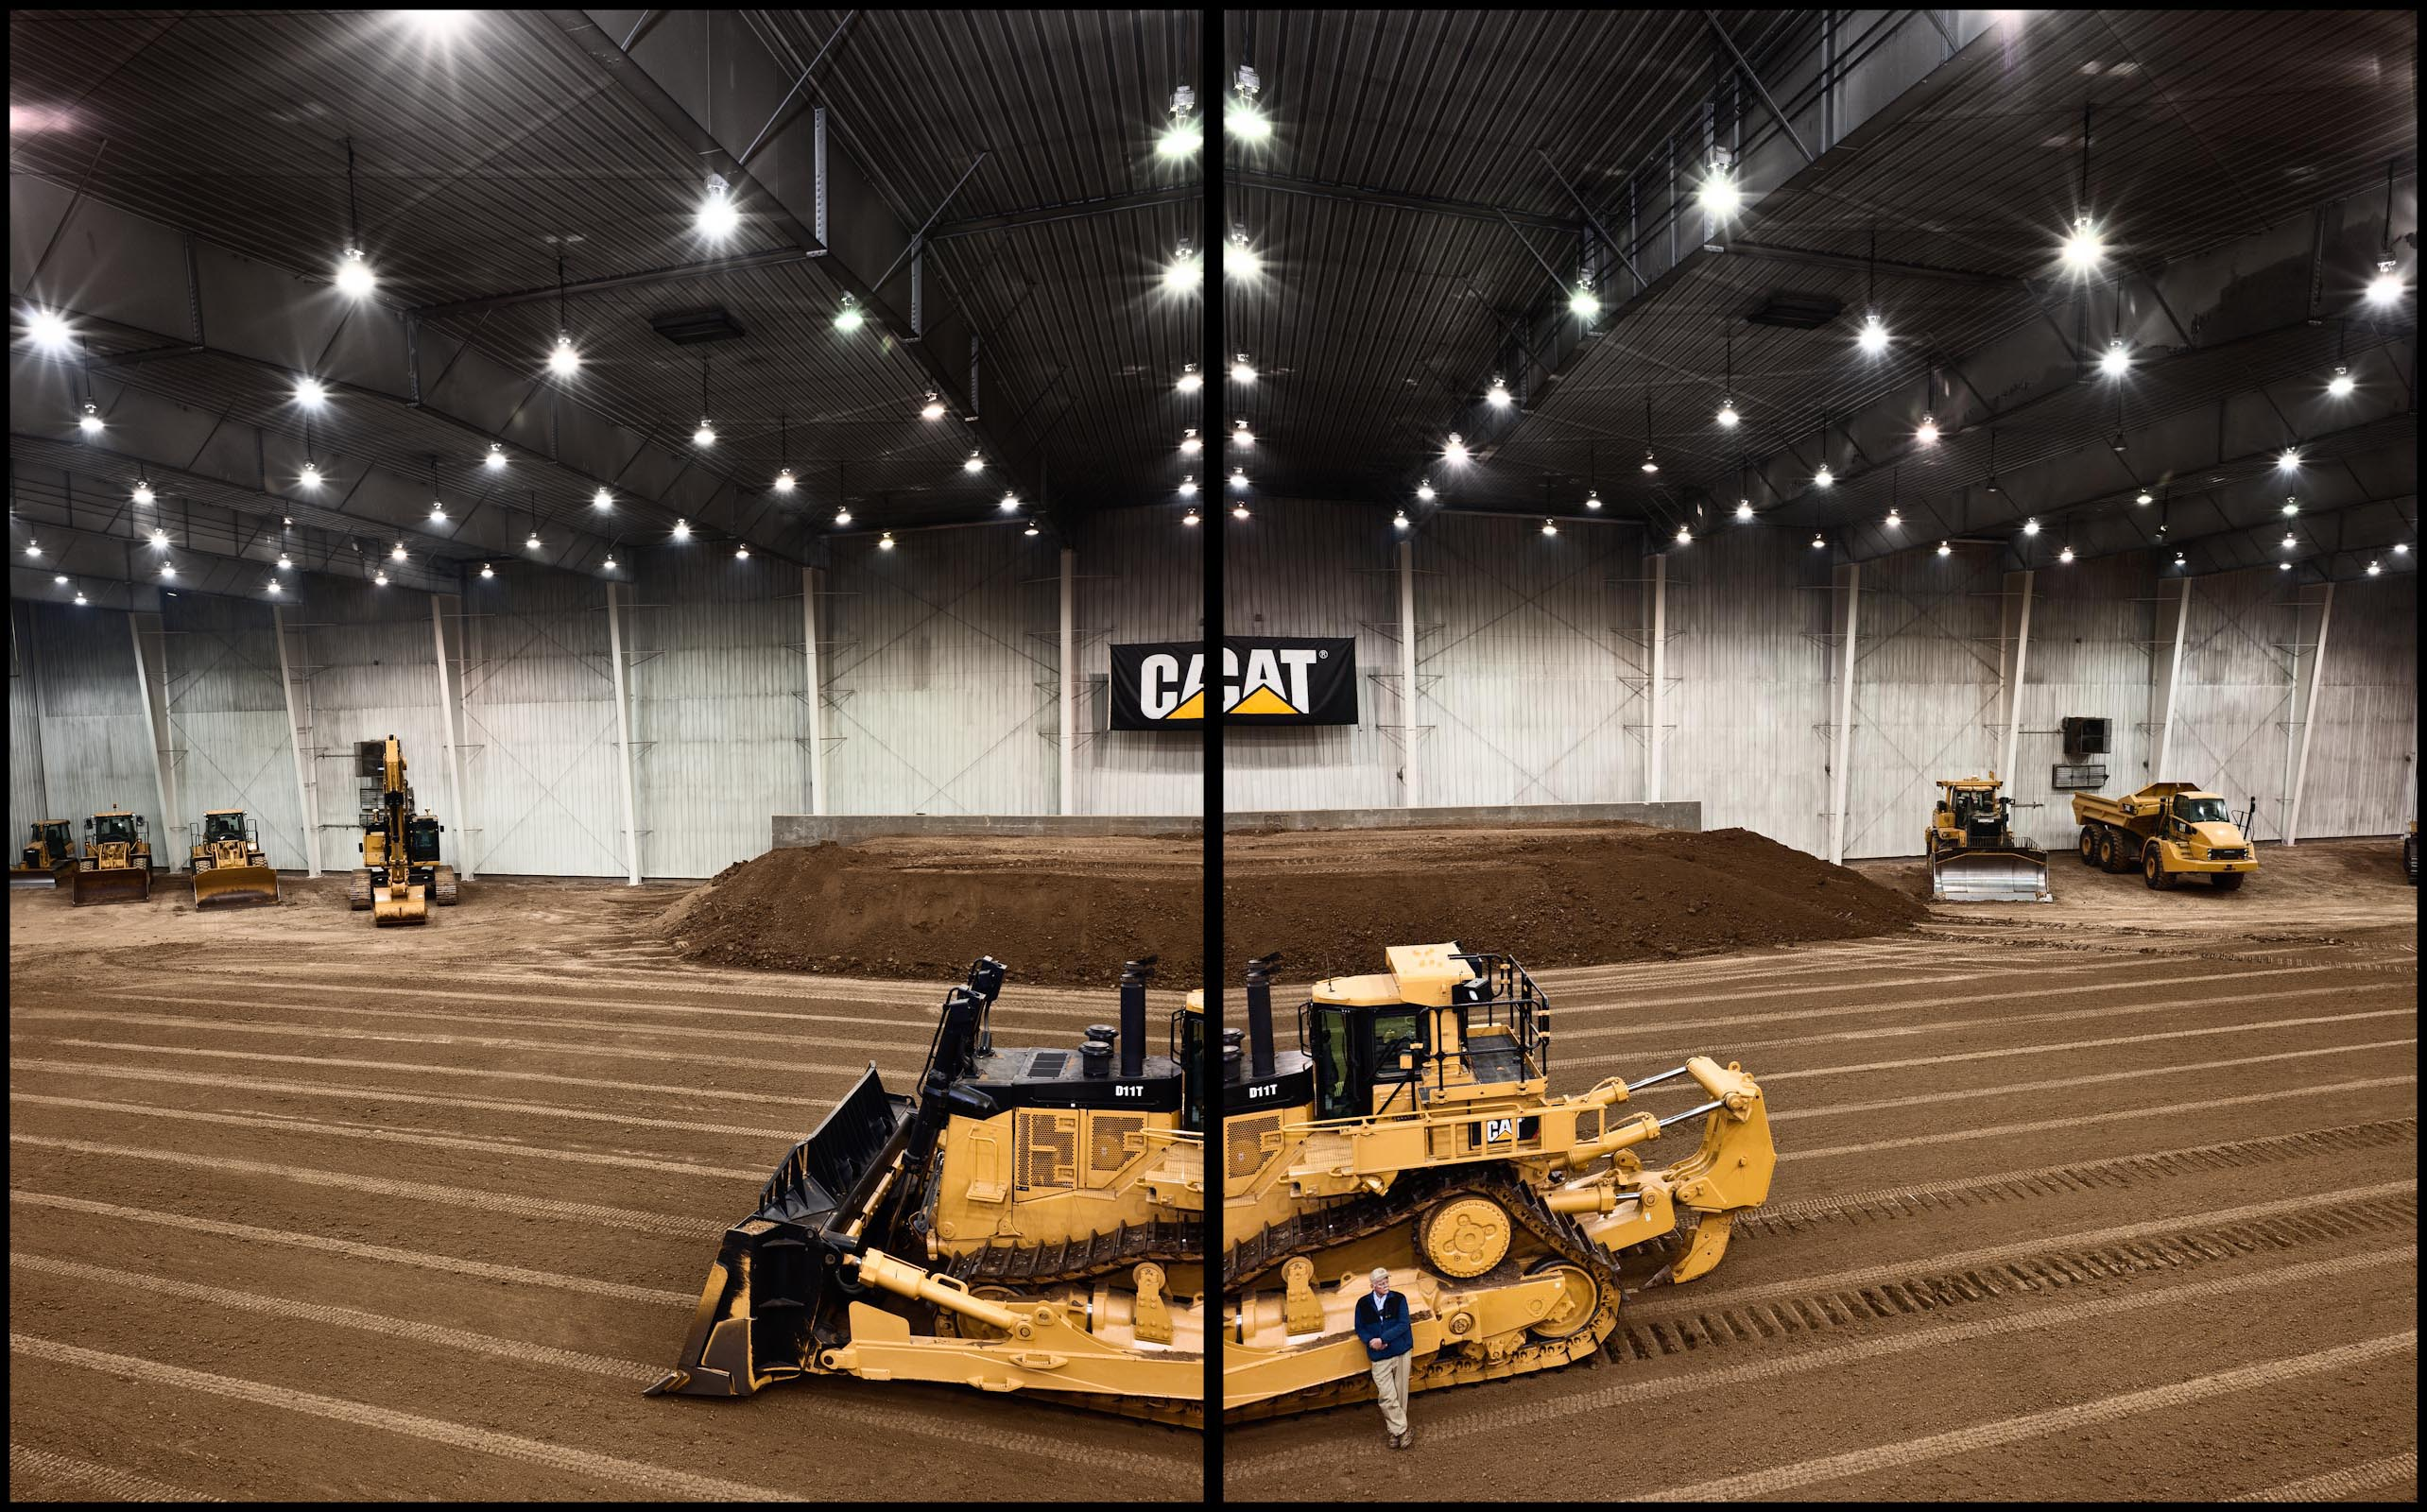 Caterpillar Showroom - Peoria, IL - Fortune Magazine